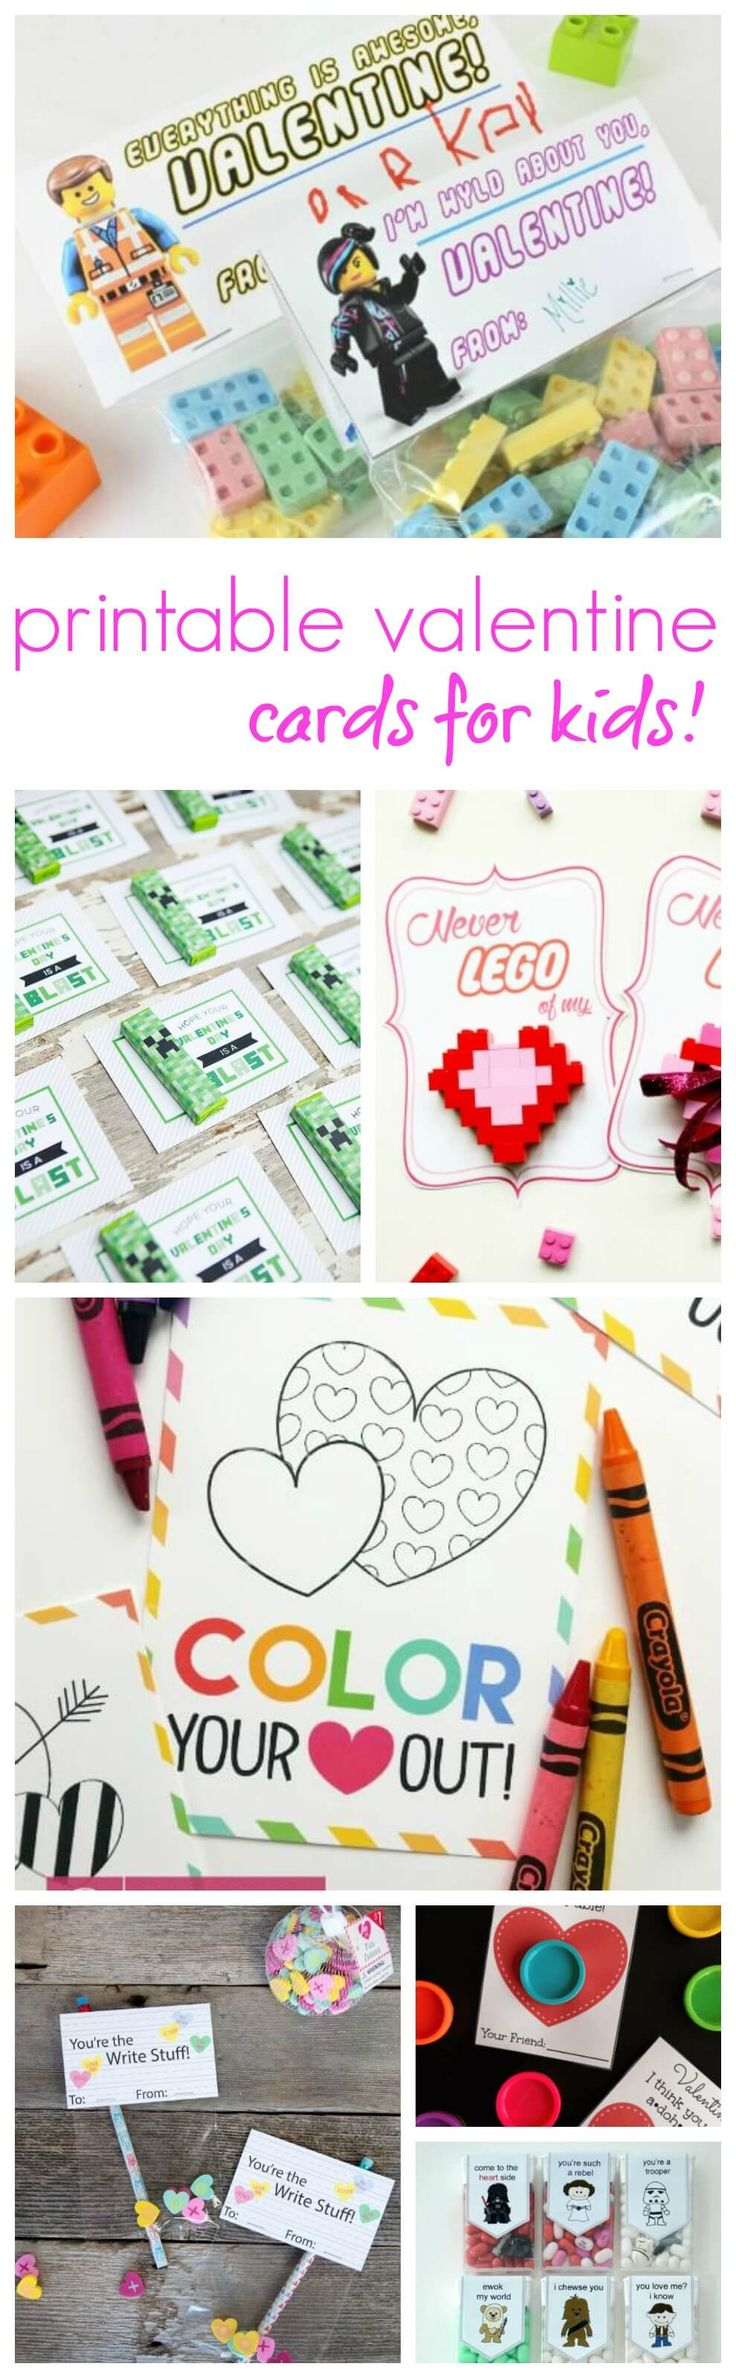 Printable Valentines Cards for Kids! Homemade Ideas to Save money on Class Valentine's for kids!